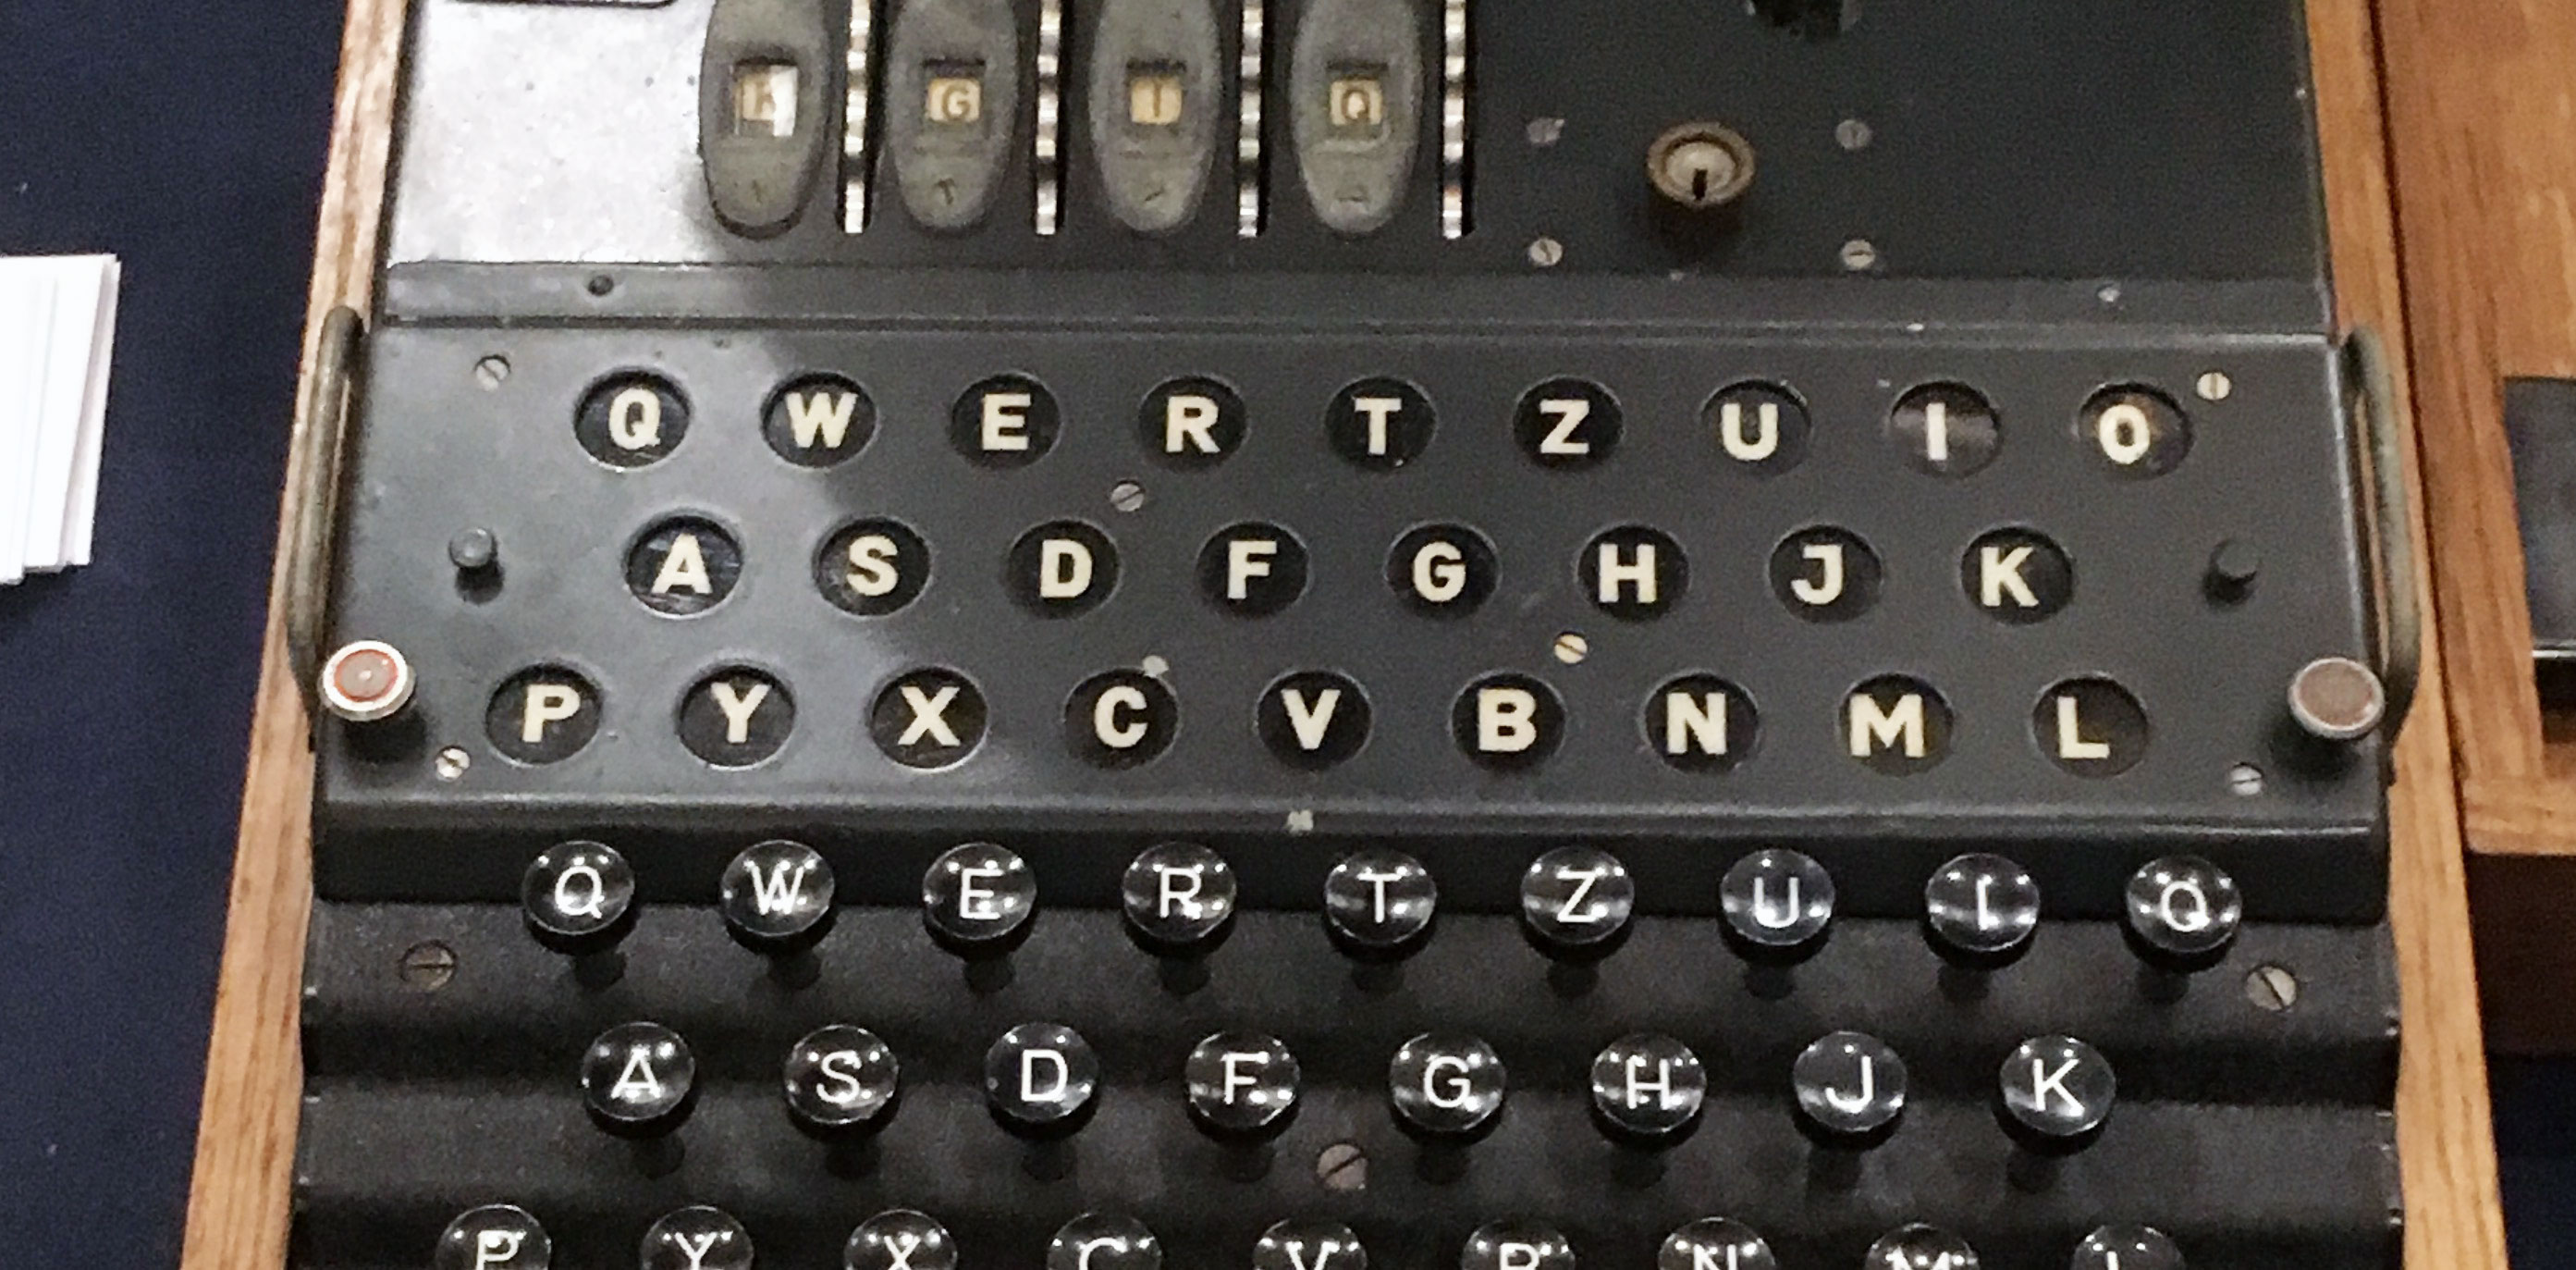 Of nuns and enigma machines